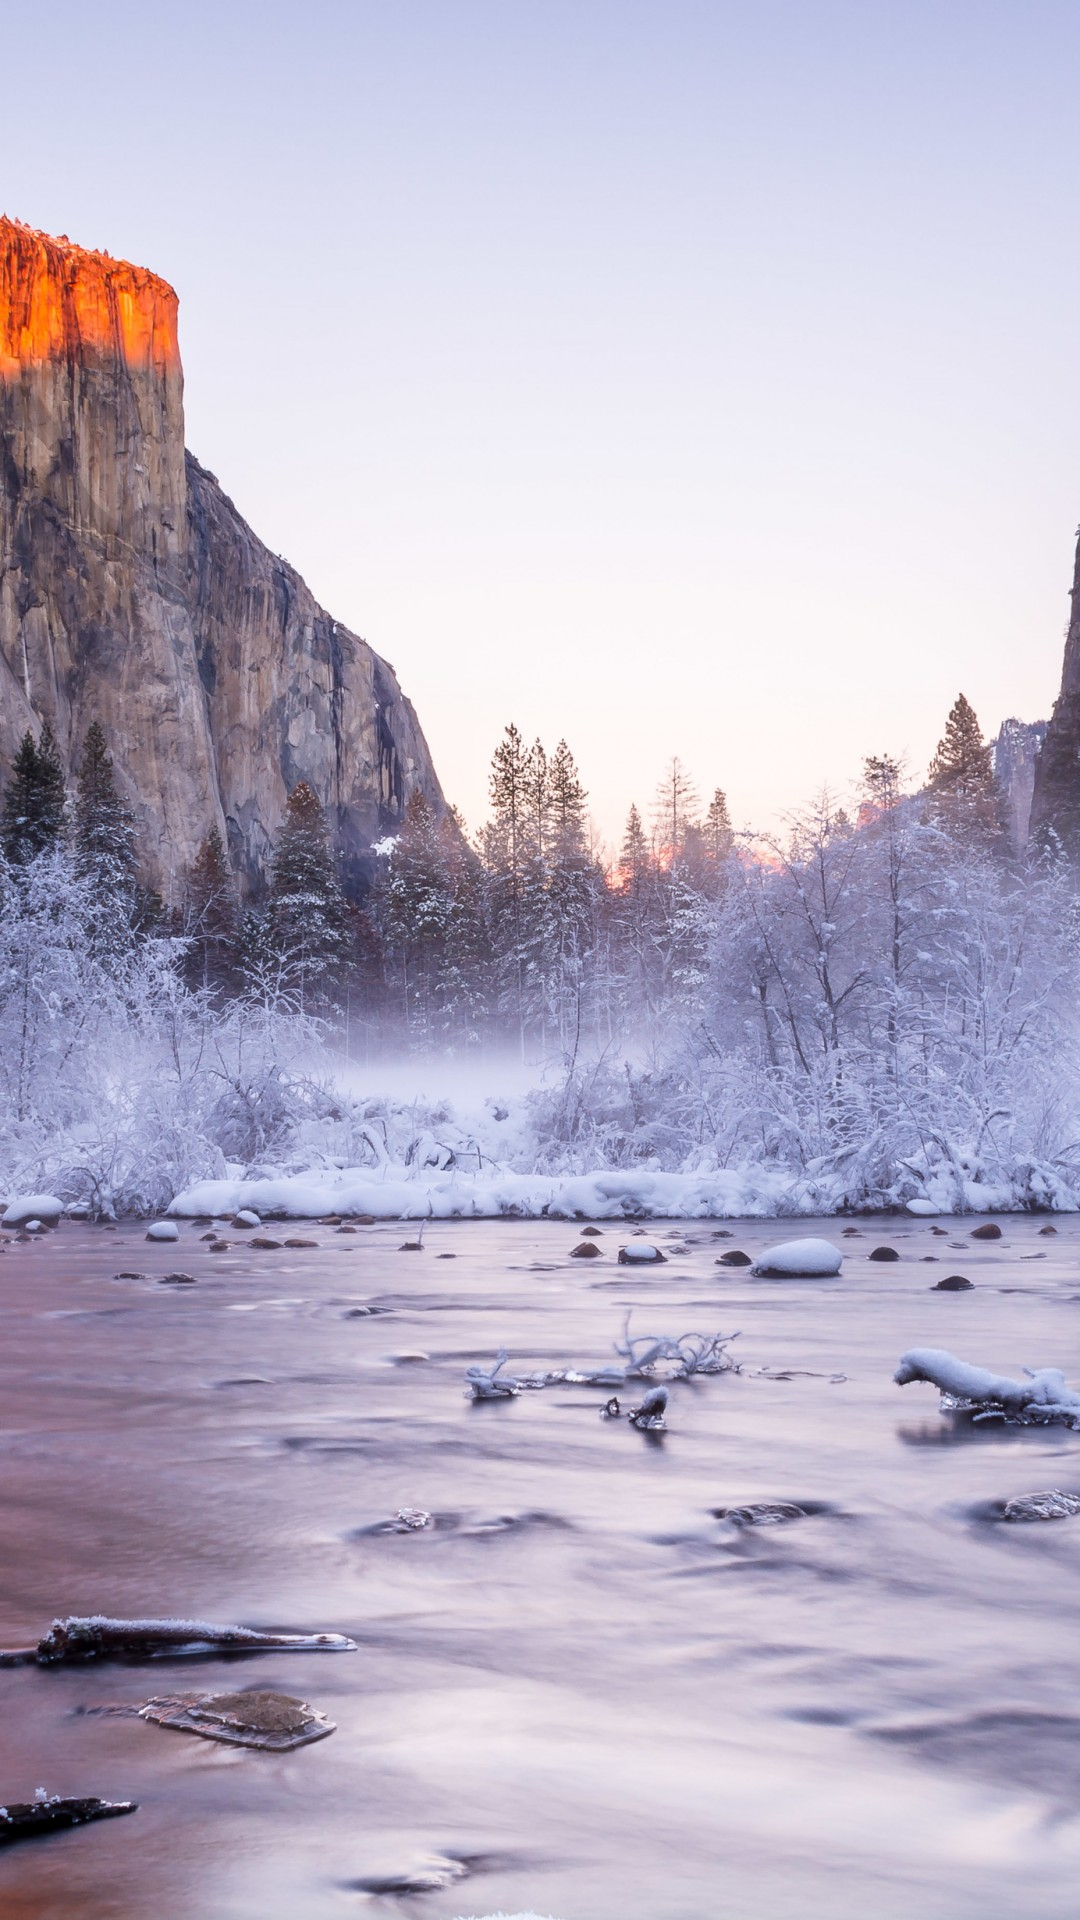 Best Hd Wallpapers With Quotes Wallpaper Yosemite 5k 4k Wallpaper National Park